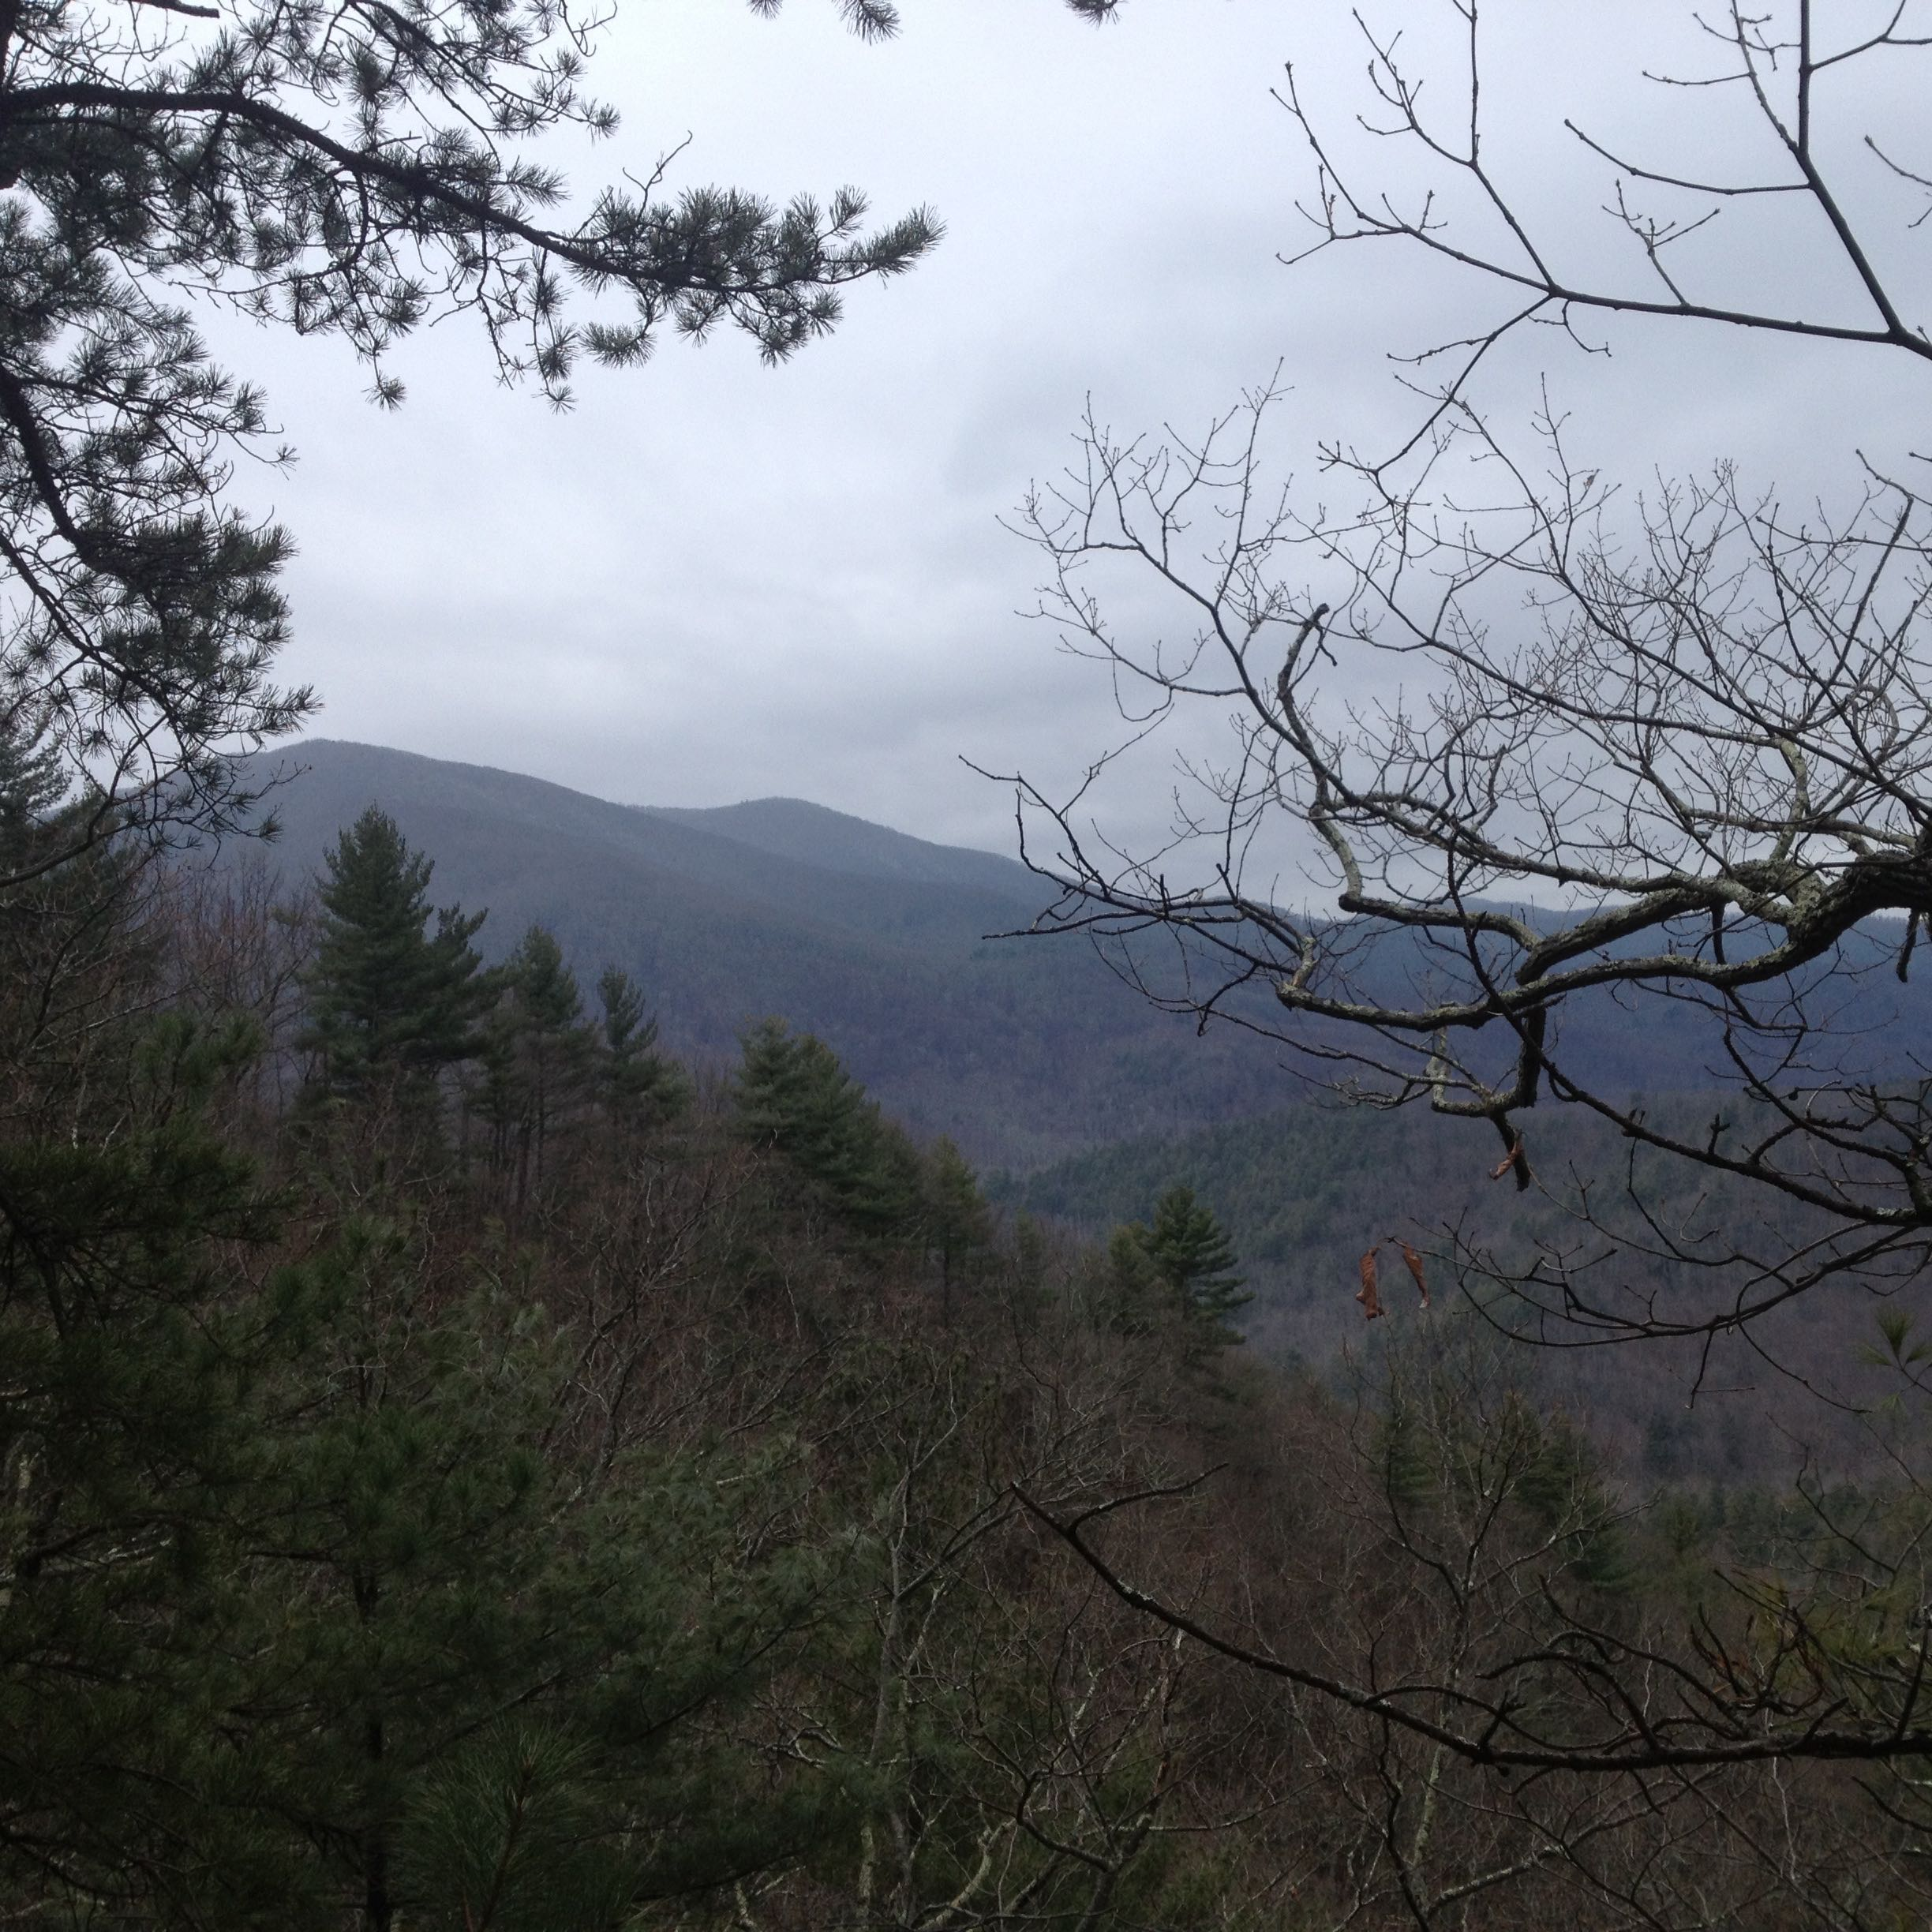 Mountain view from the Appalachian Trail in February.